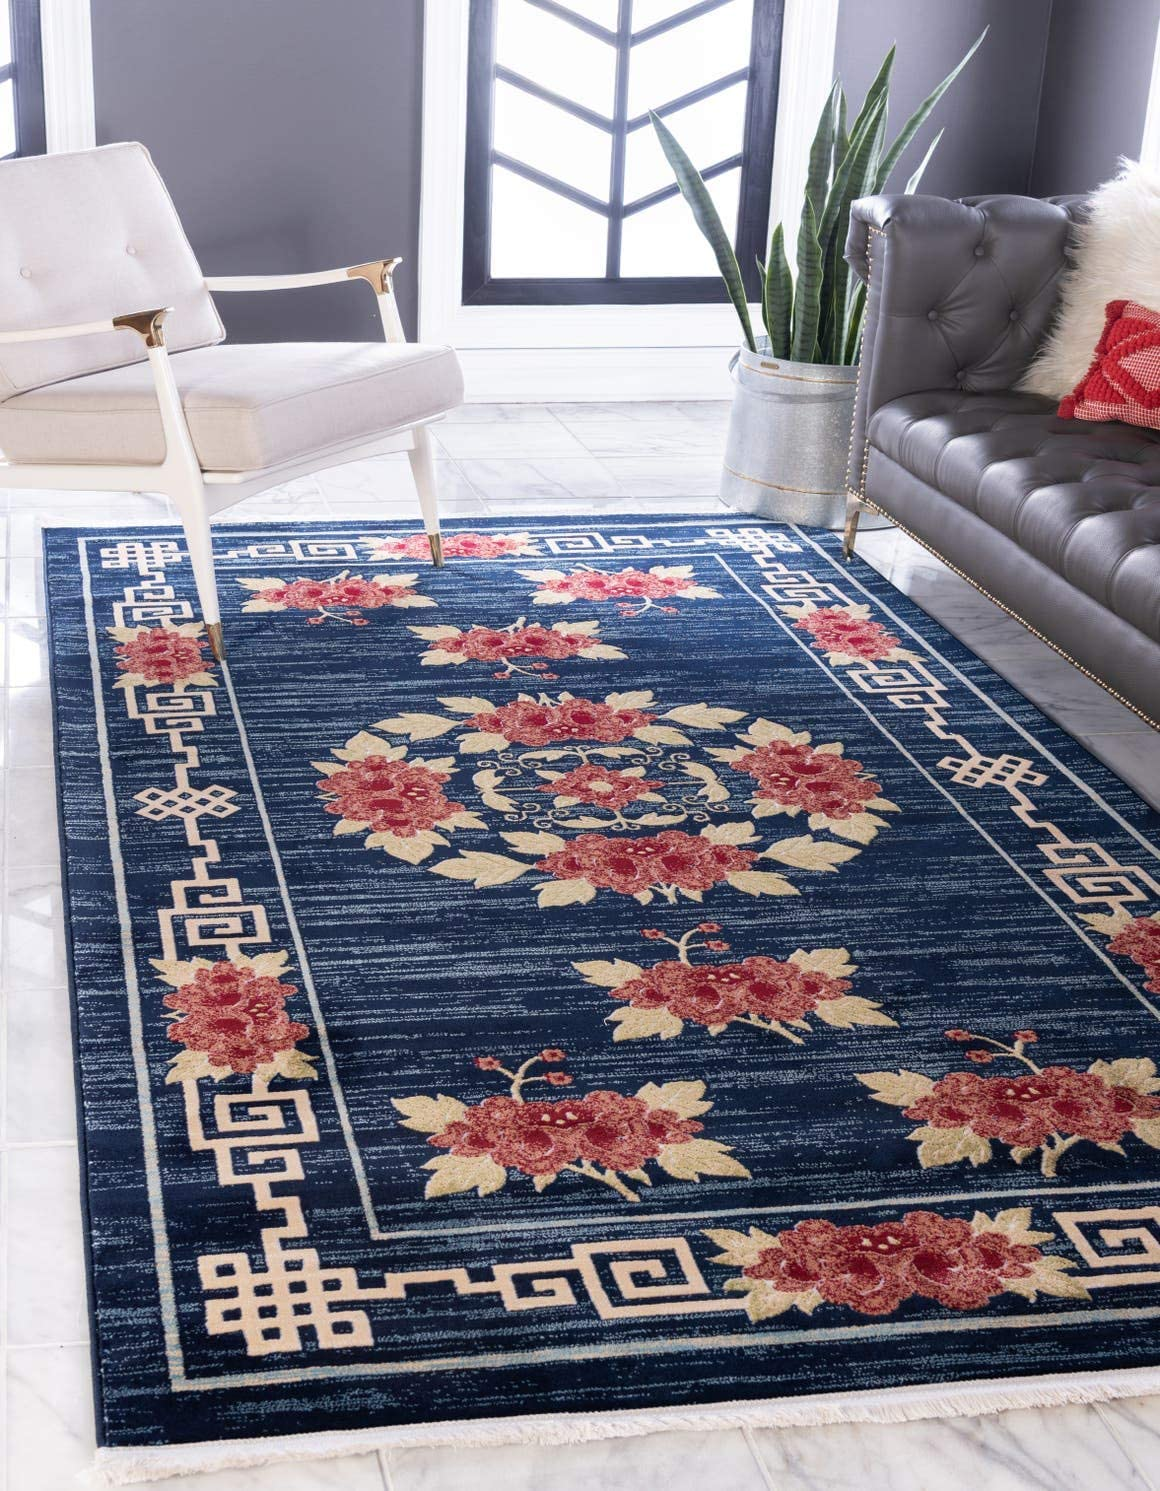 Unique Loom Gansu Collection Antique Finish Floral Chinese Pattern Navy Blue Area Rug 5 0 x 8 0